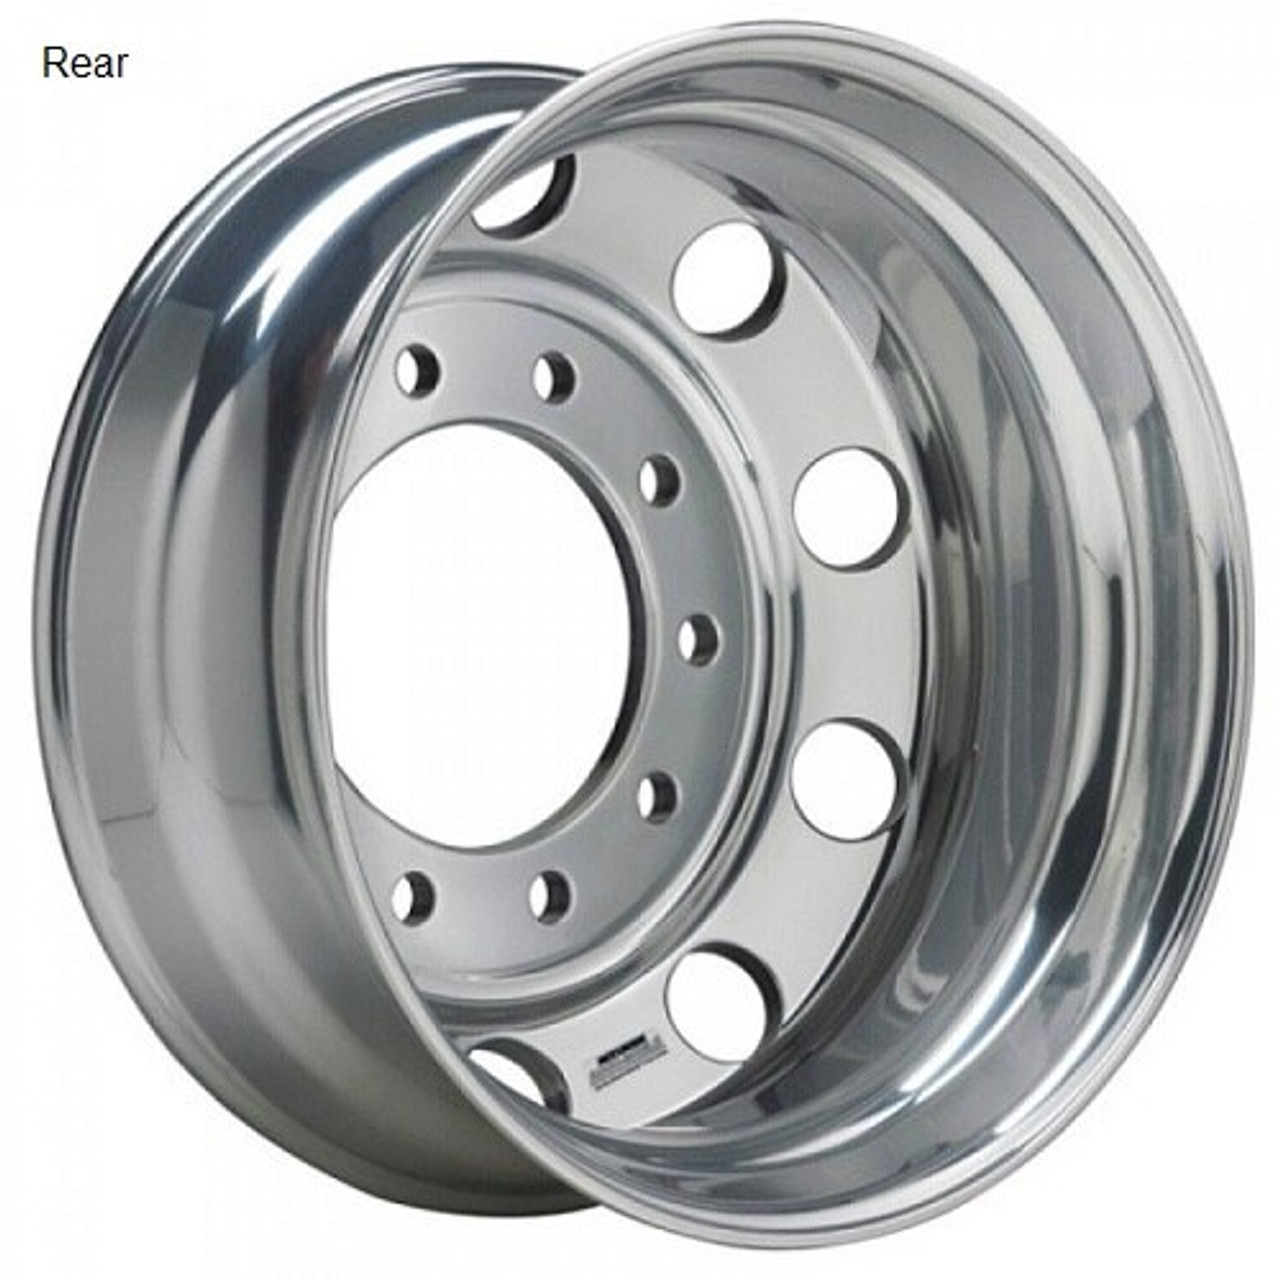 22.5 x 8.25 Accuride Classic Polished Rear